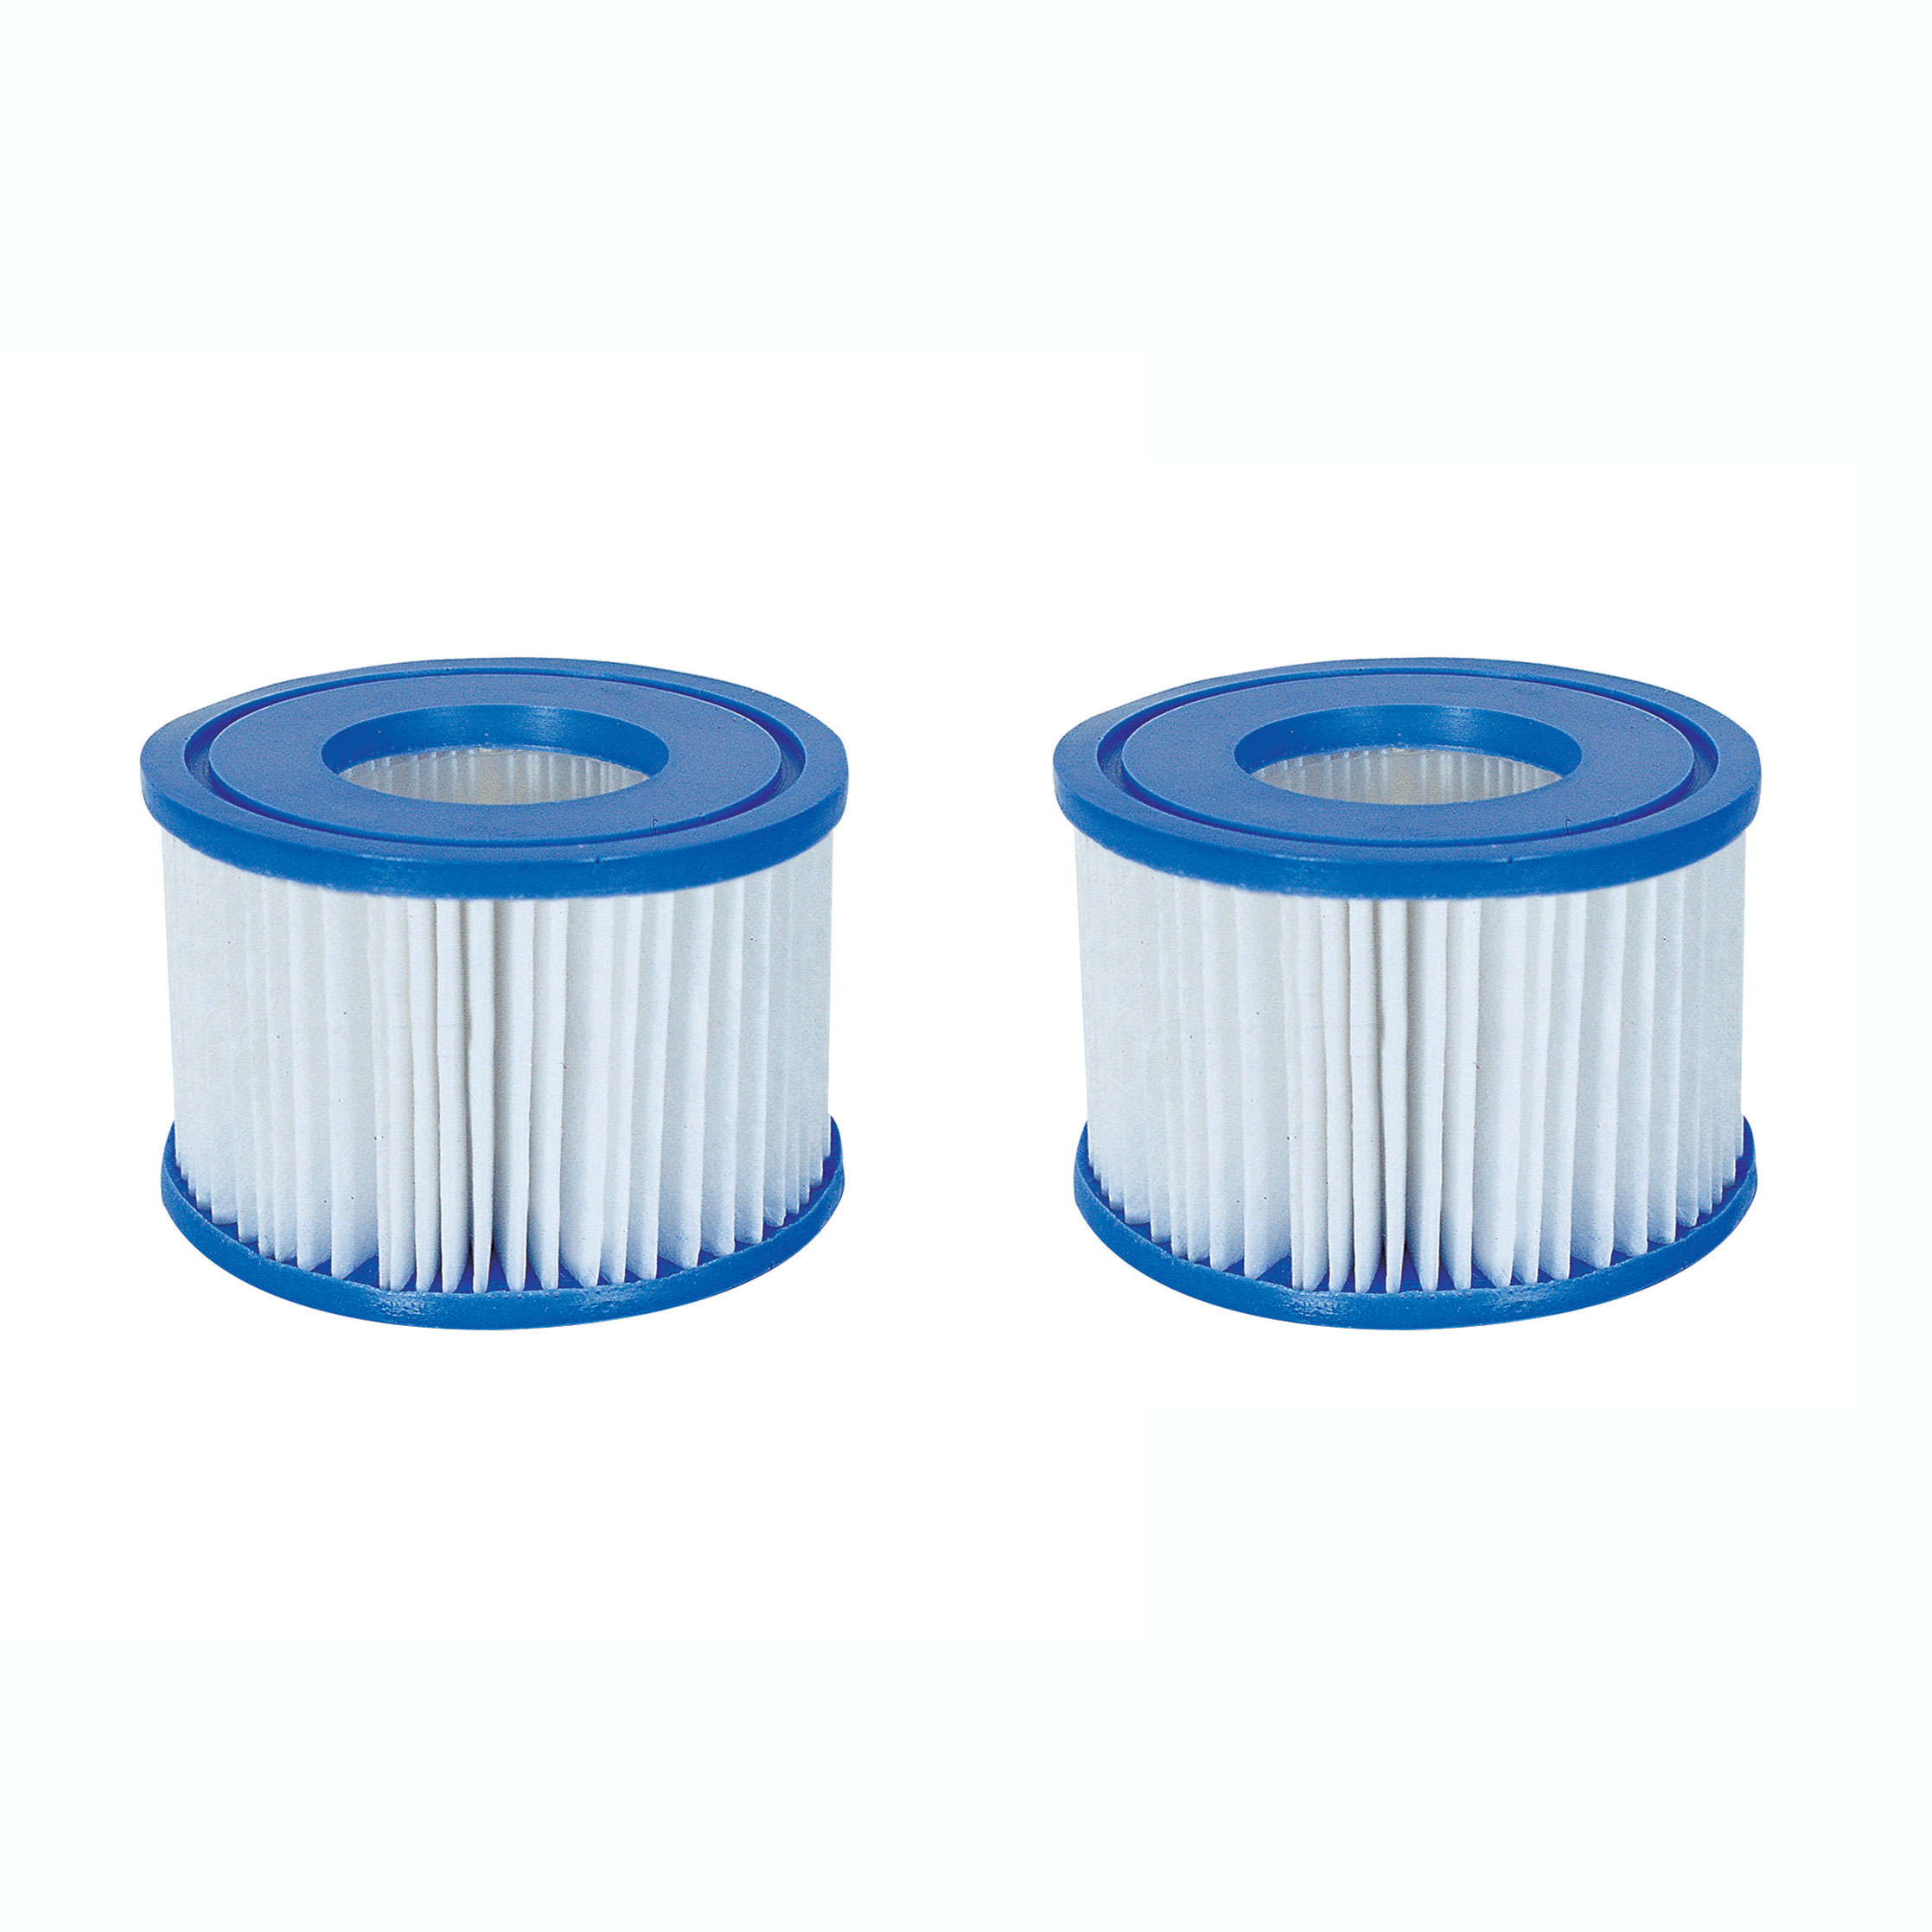 Bestway Spa Filter Pump Replacement Cartridge Type VI SaluSpa Hot Tub (2 Pack)